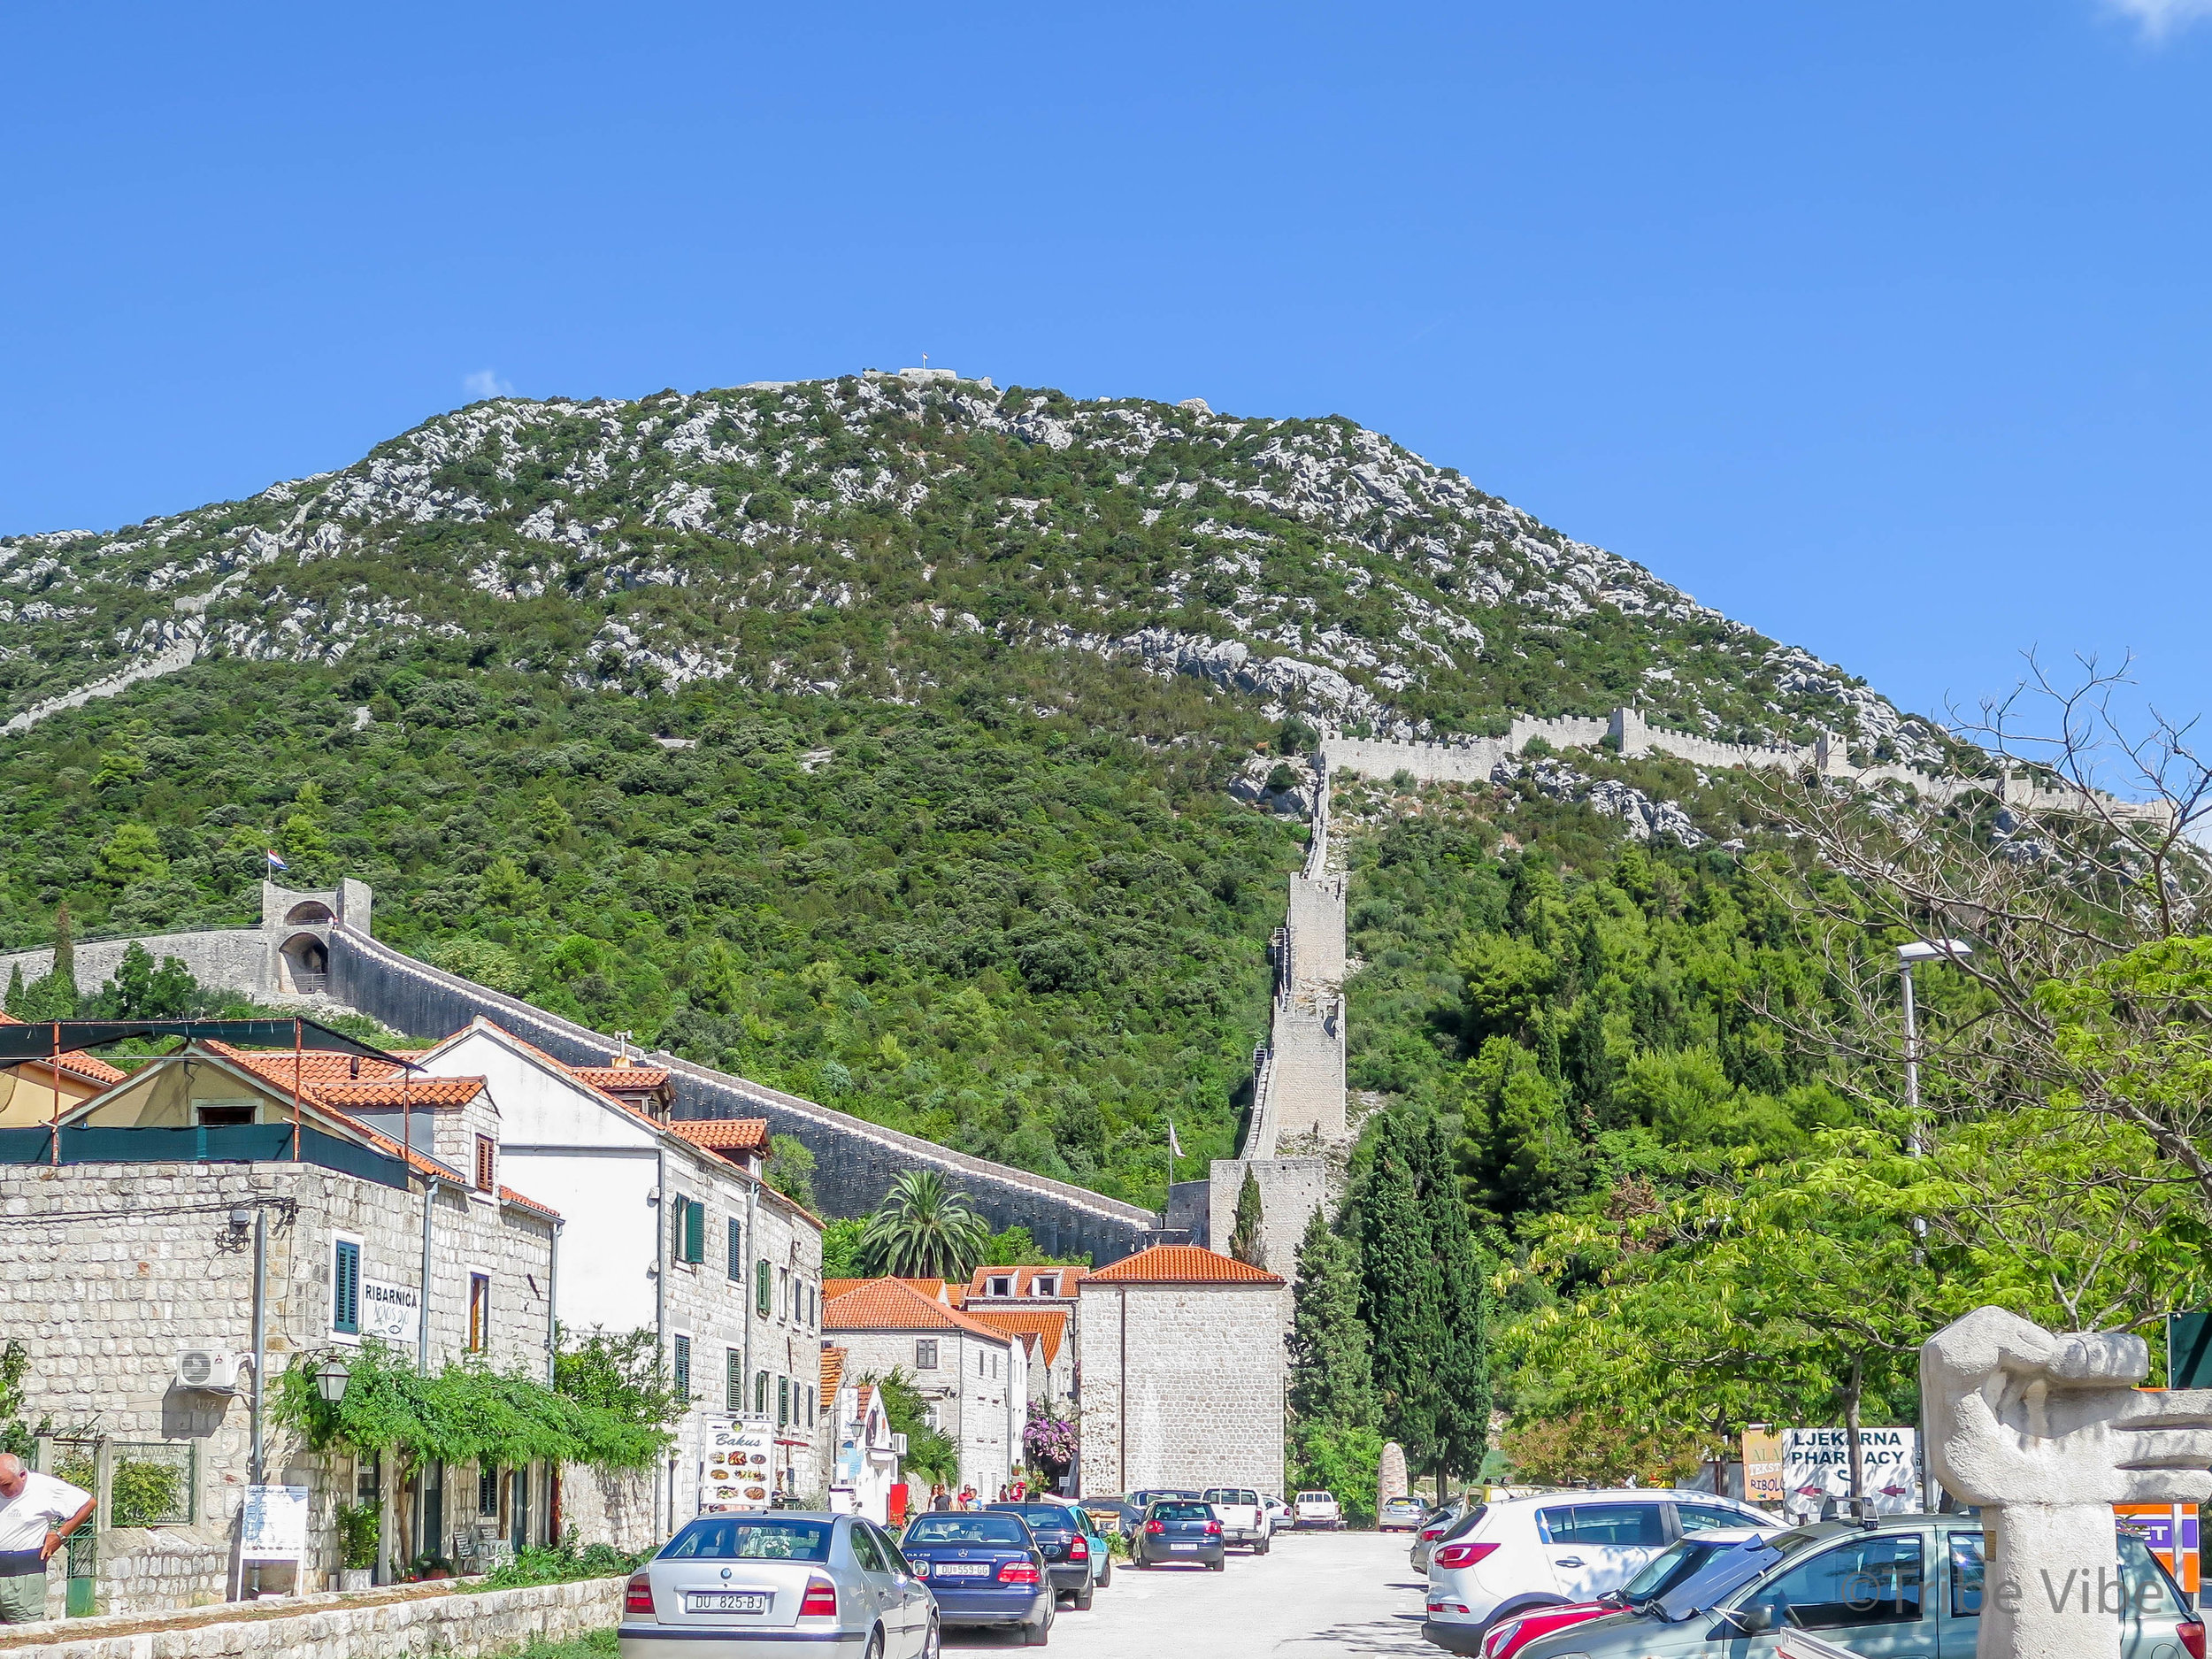 Croatia Road Trip. Day trips from Dubrovnik. Exploring Croatian vineyards.